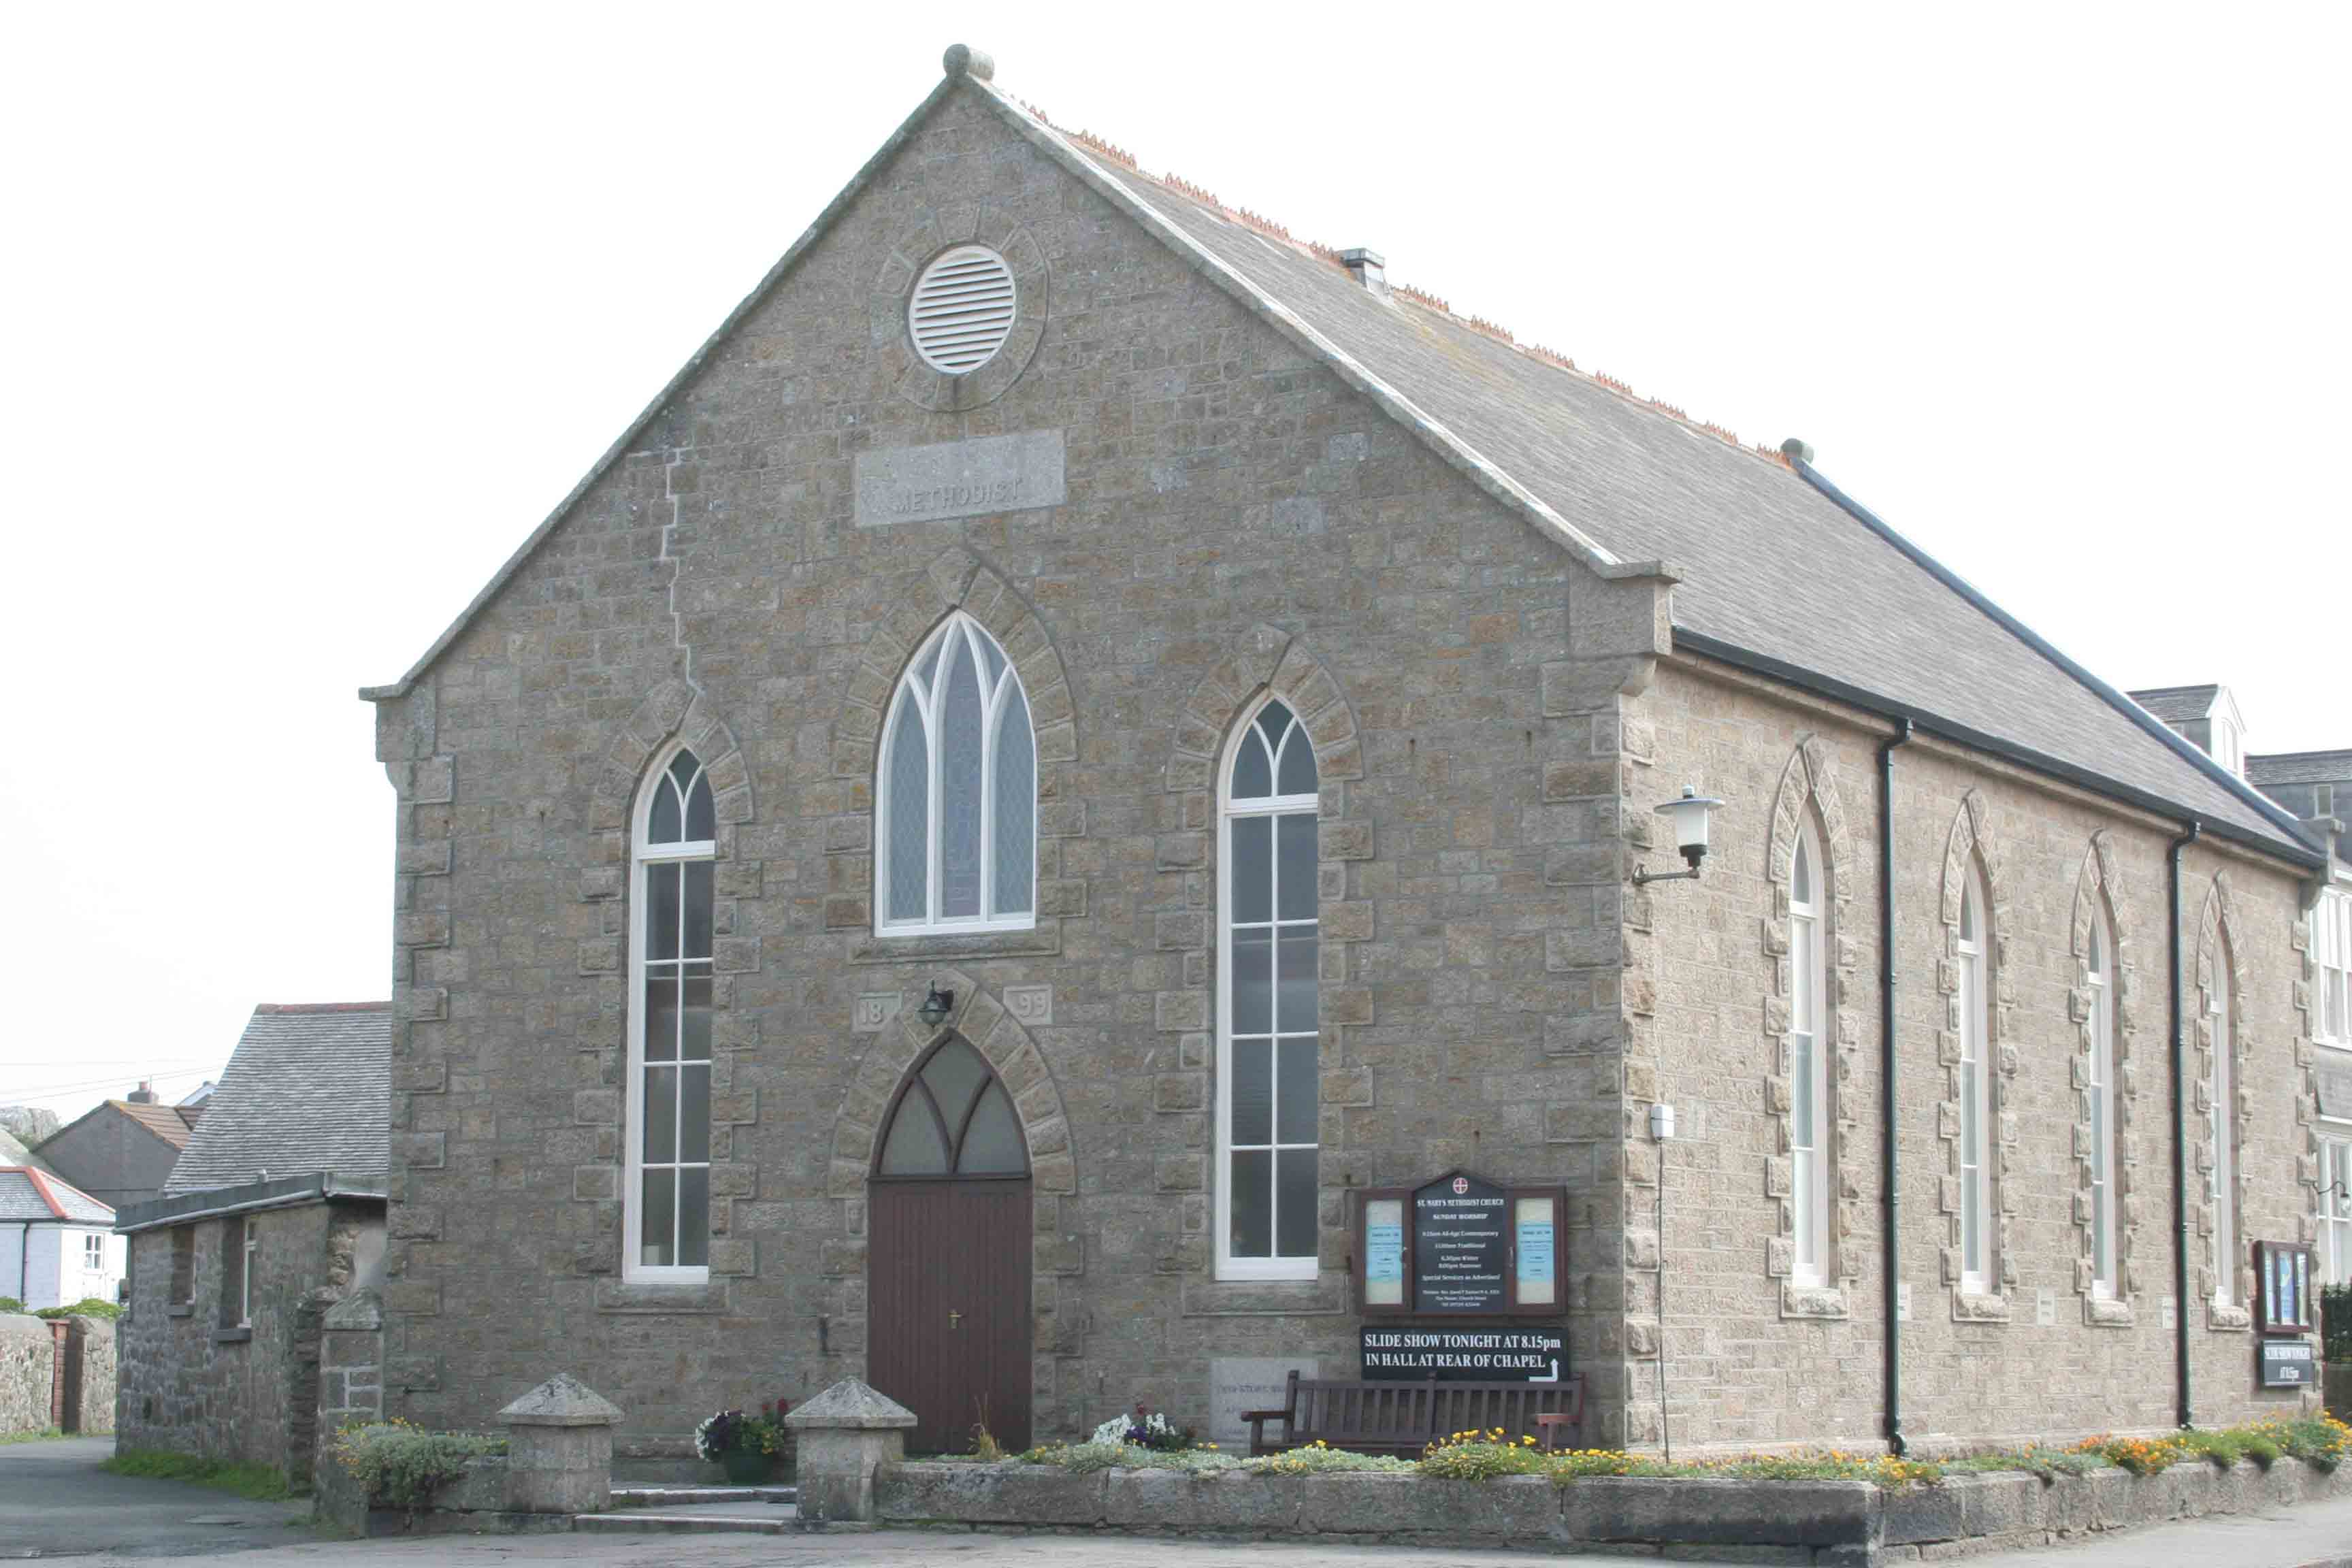 St. Mary's Methodist Church